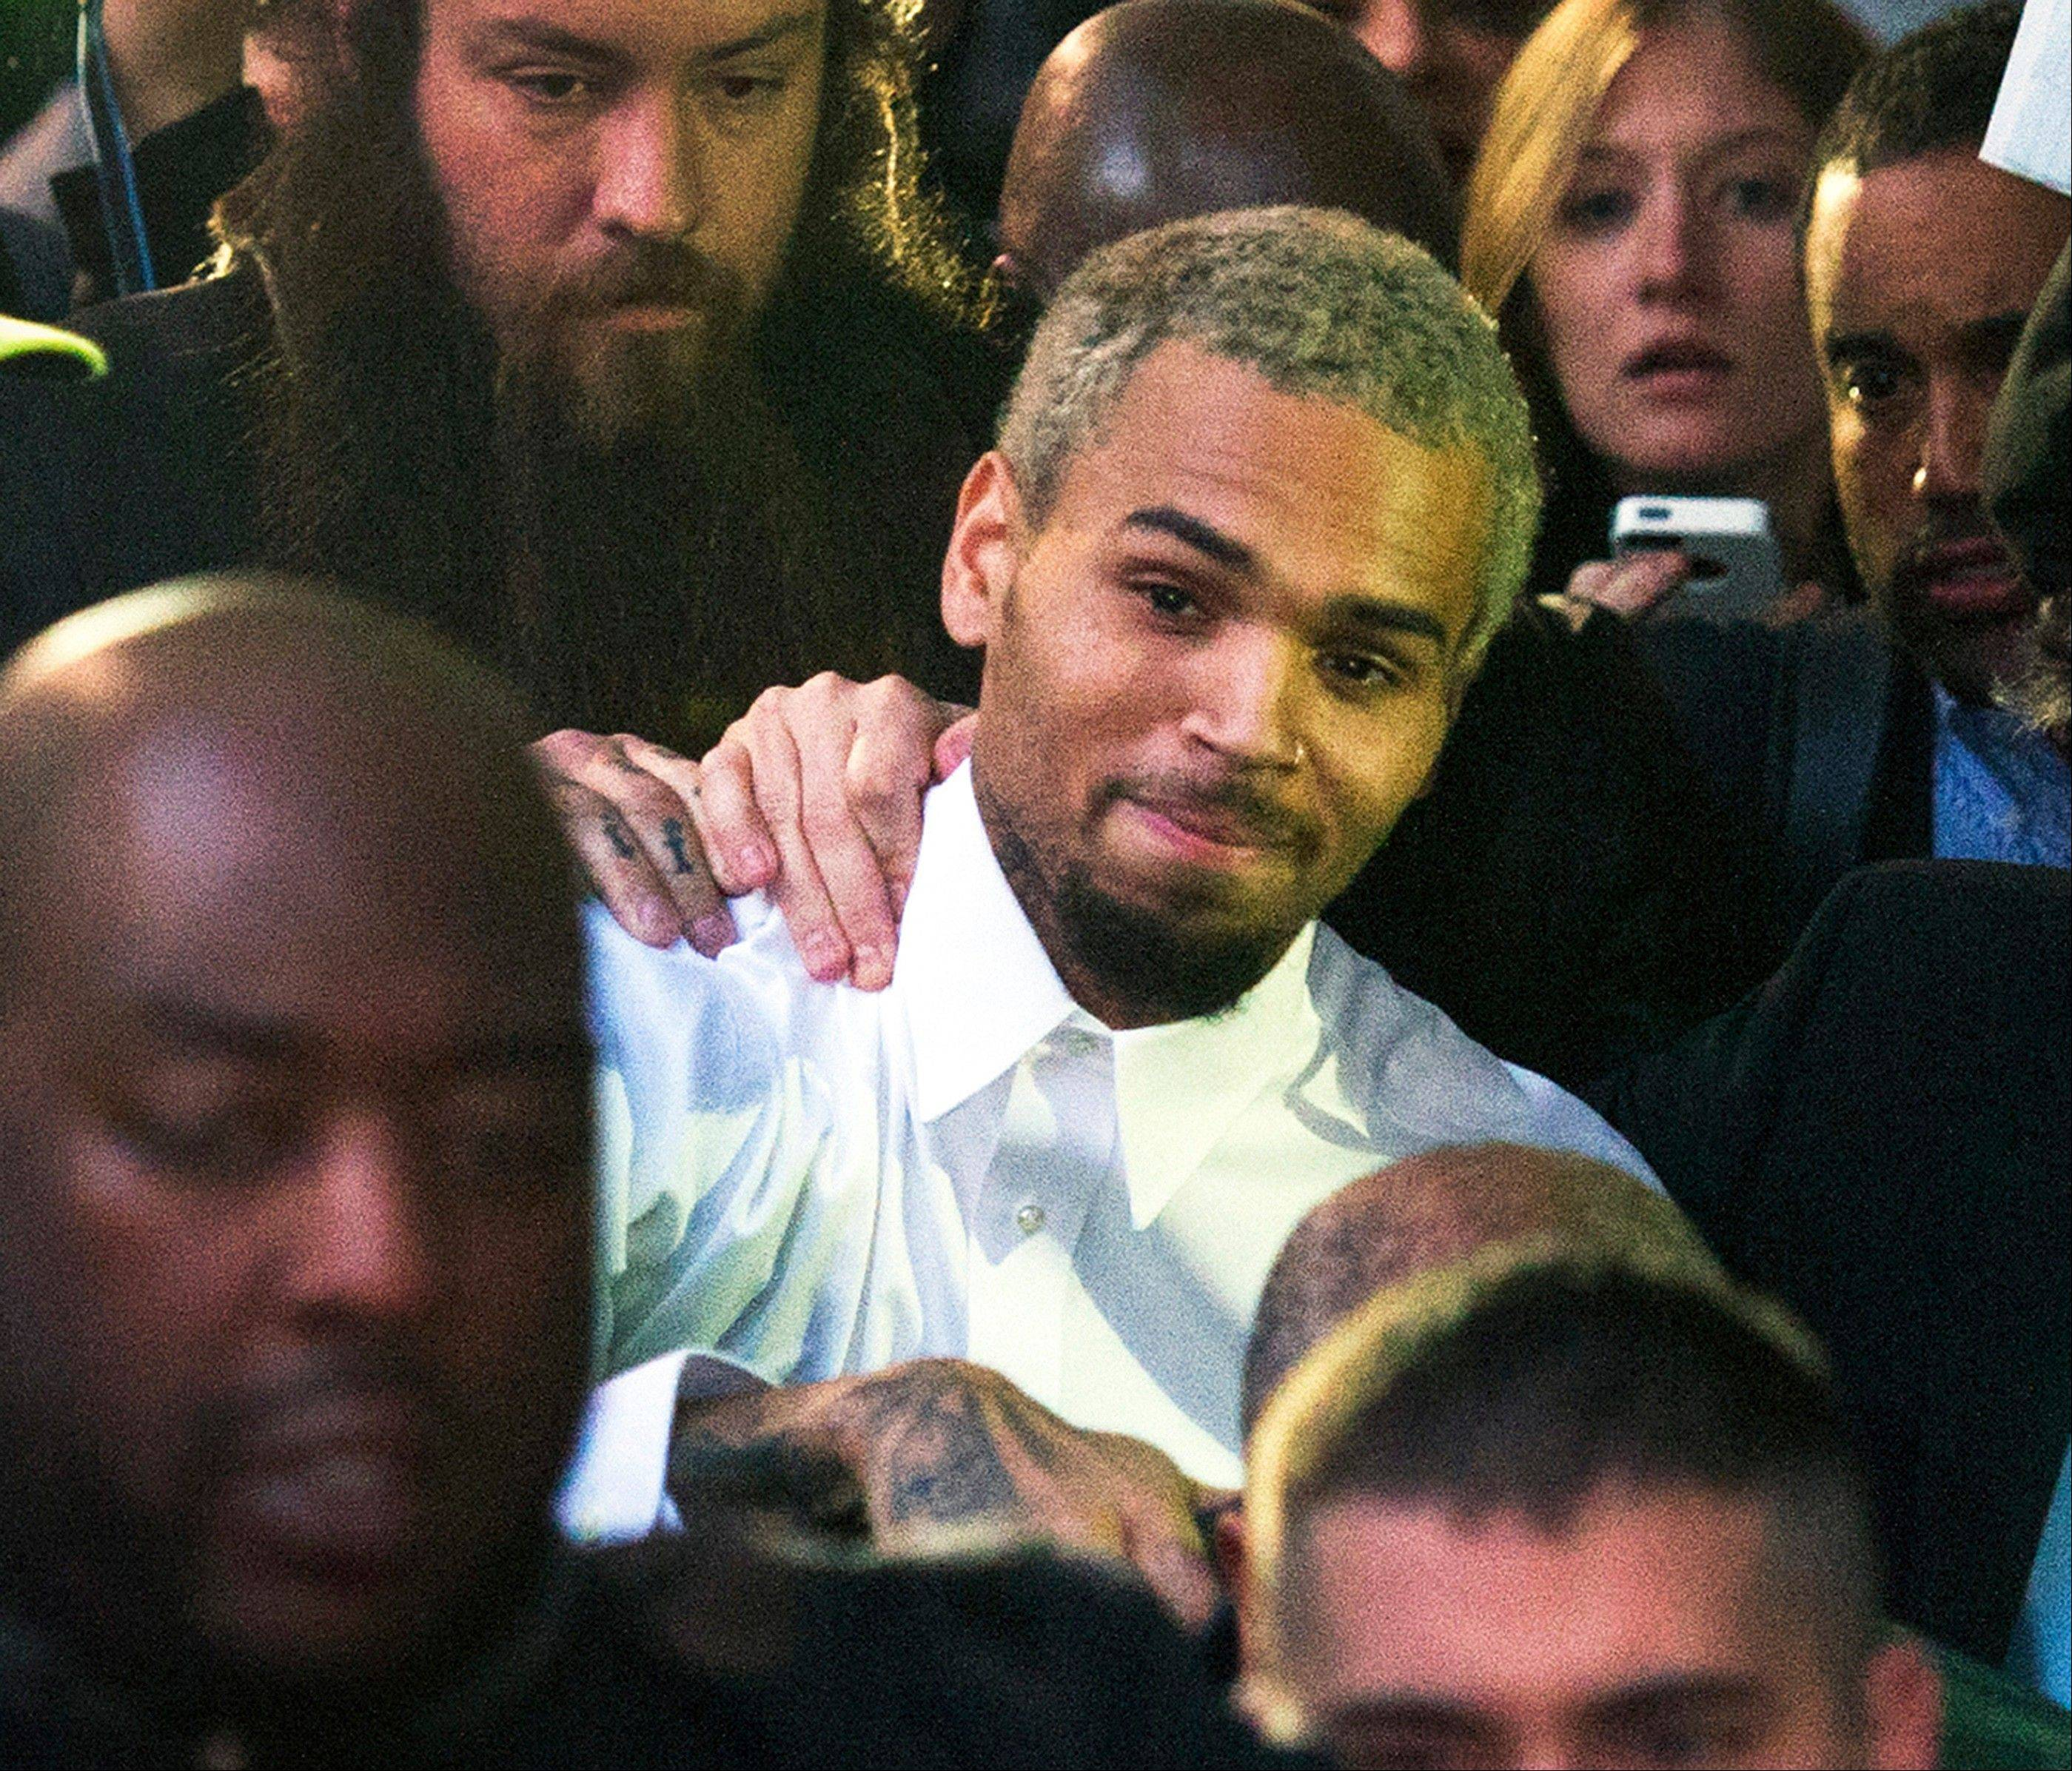 Singer Chris Brown, center, departs the H. Carl Moultriel courthouse Monday in Washington. A charge against the Grammy Award-winning R&B singer has been reduced to a misdemeanor and he was ordered released after his arrest Sunday following an altercation outside a Washington hotel.